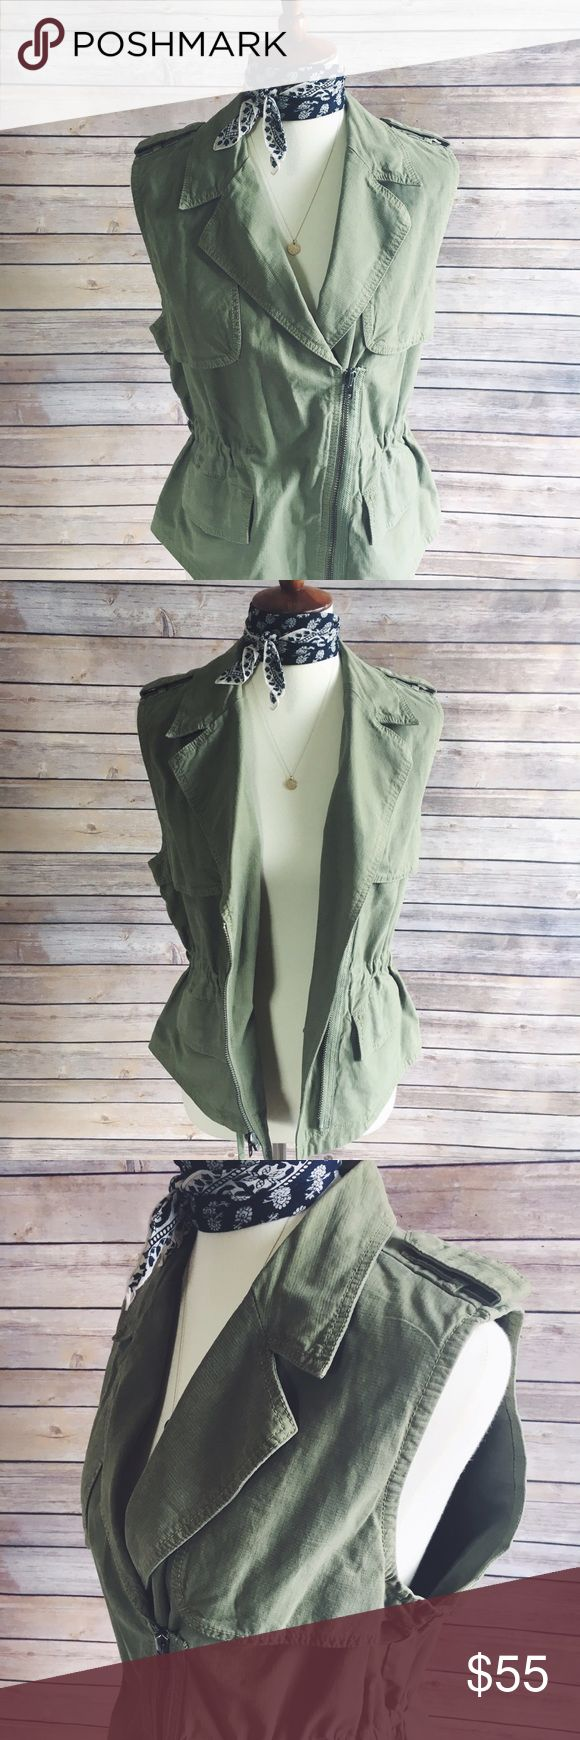 Madewell Modern Safari Vest Combining the best elements of a biker vest (check out the diagonal zip) and a flak jacket (see epaulets and roomy pockets), it's a just-right layering piece for cool summer nights. Hardly worn!   True to size. Cotton with a hint of stretch. Machine wash. Import. Item A5049. Madewell Jackets & Coats Vests